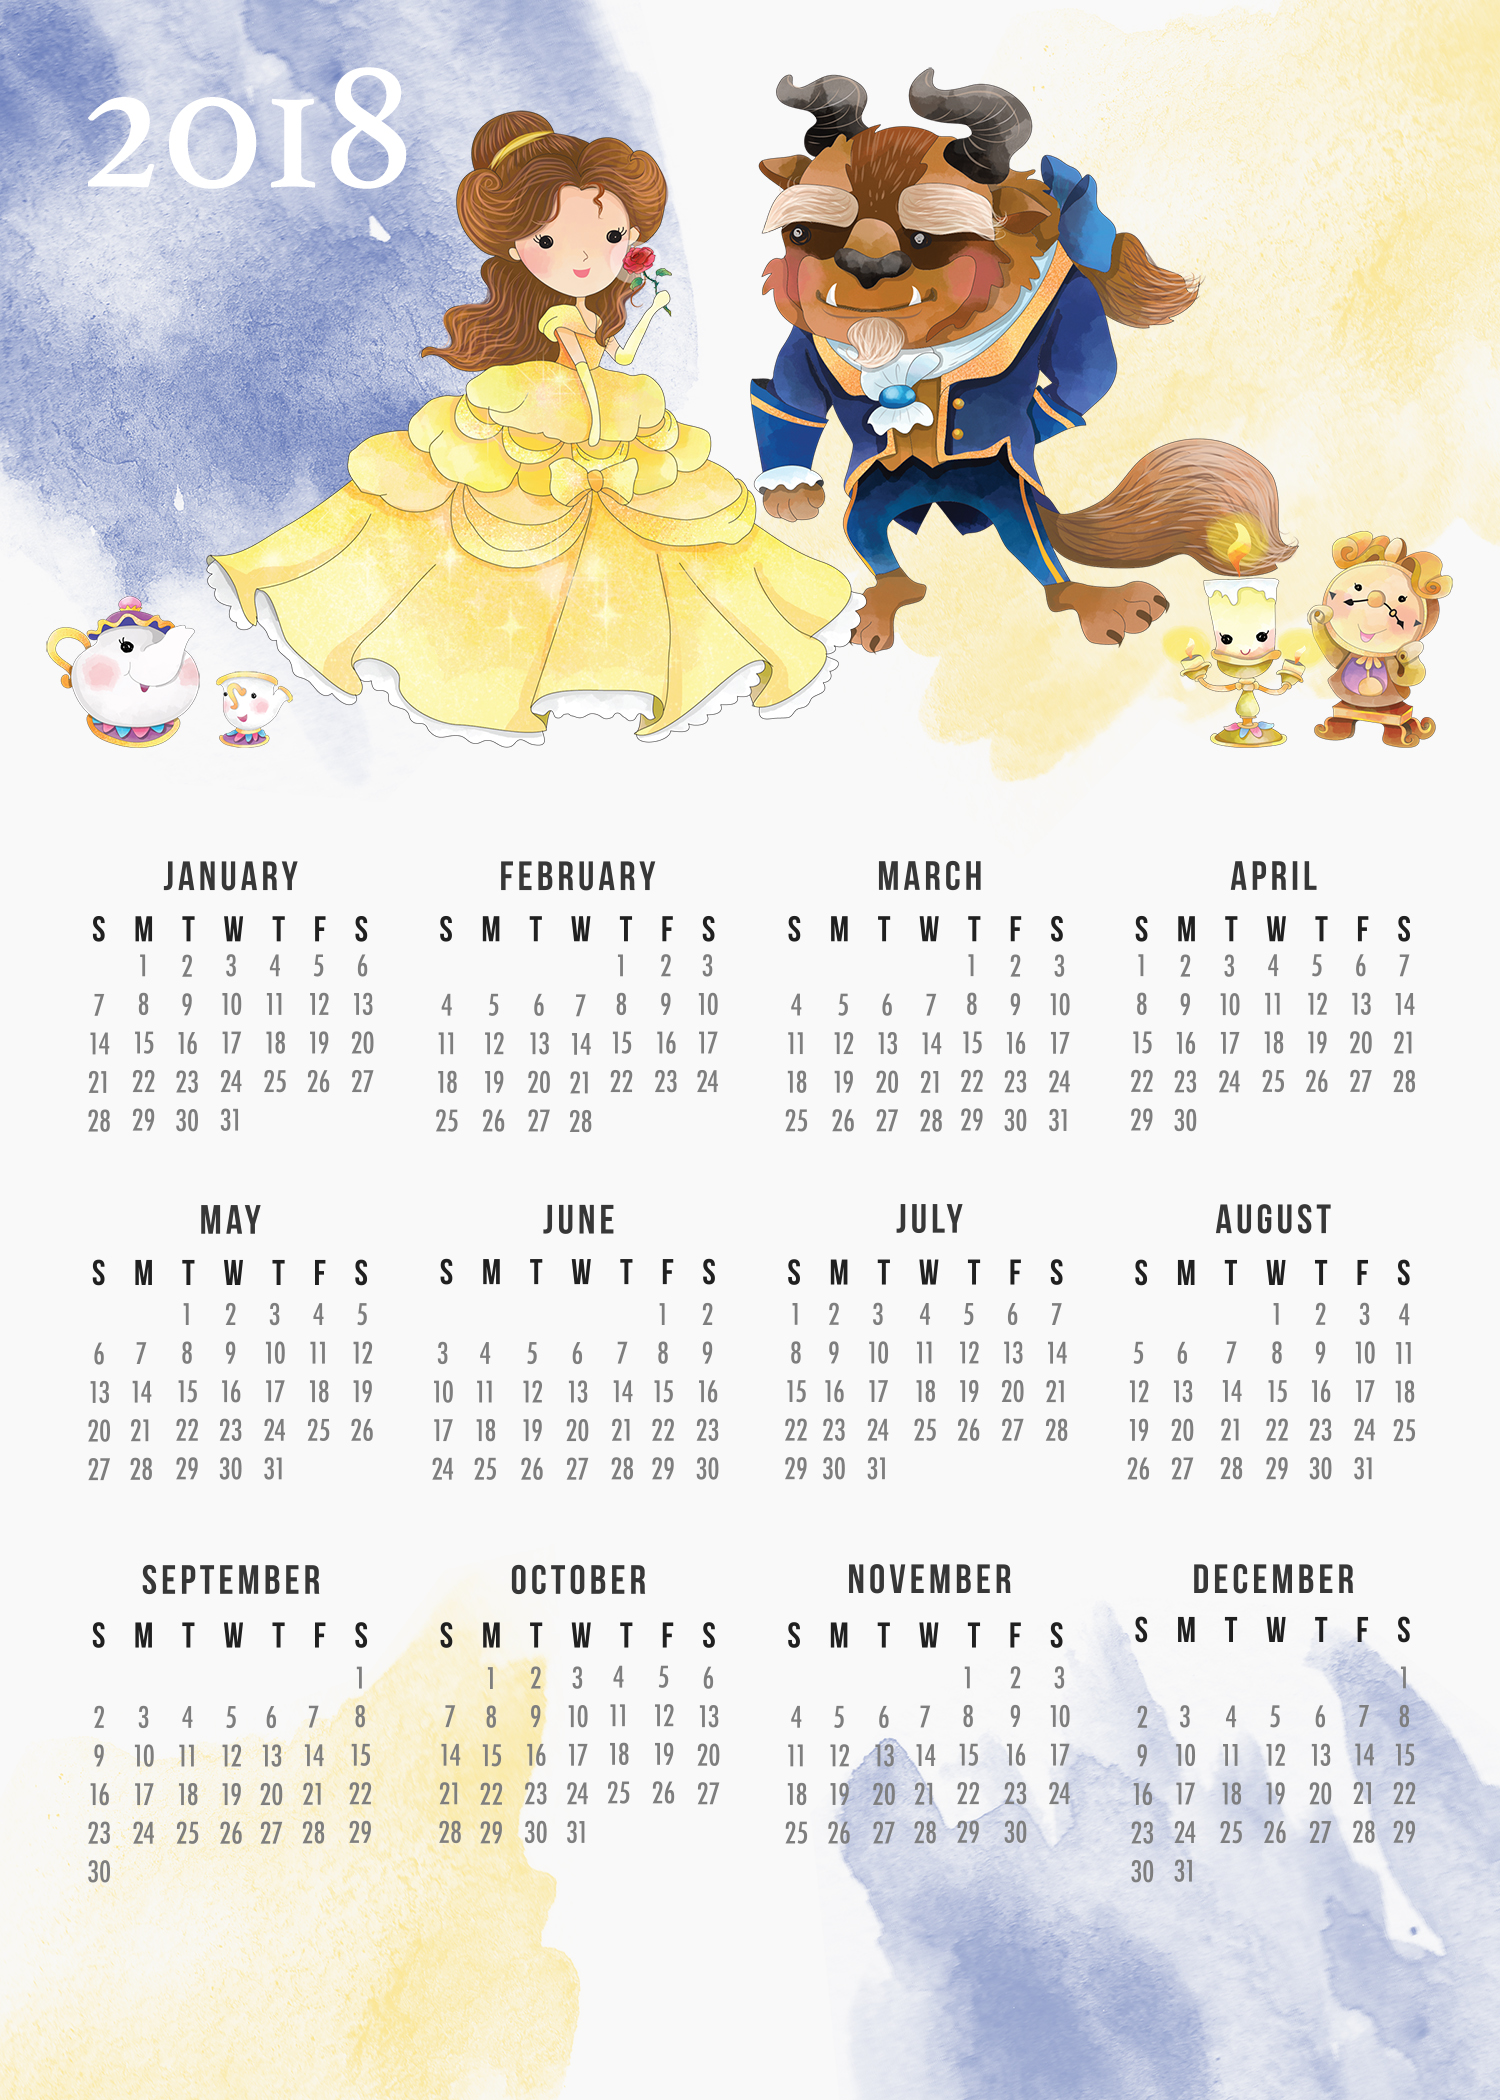 Free Printable 2018 Beauty and the Beast Calendar - The Cottage Market